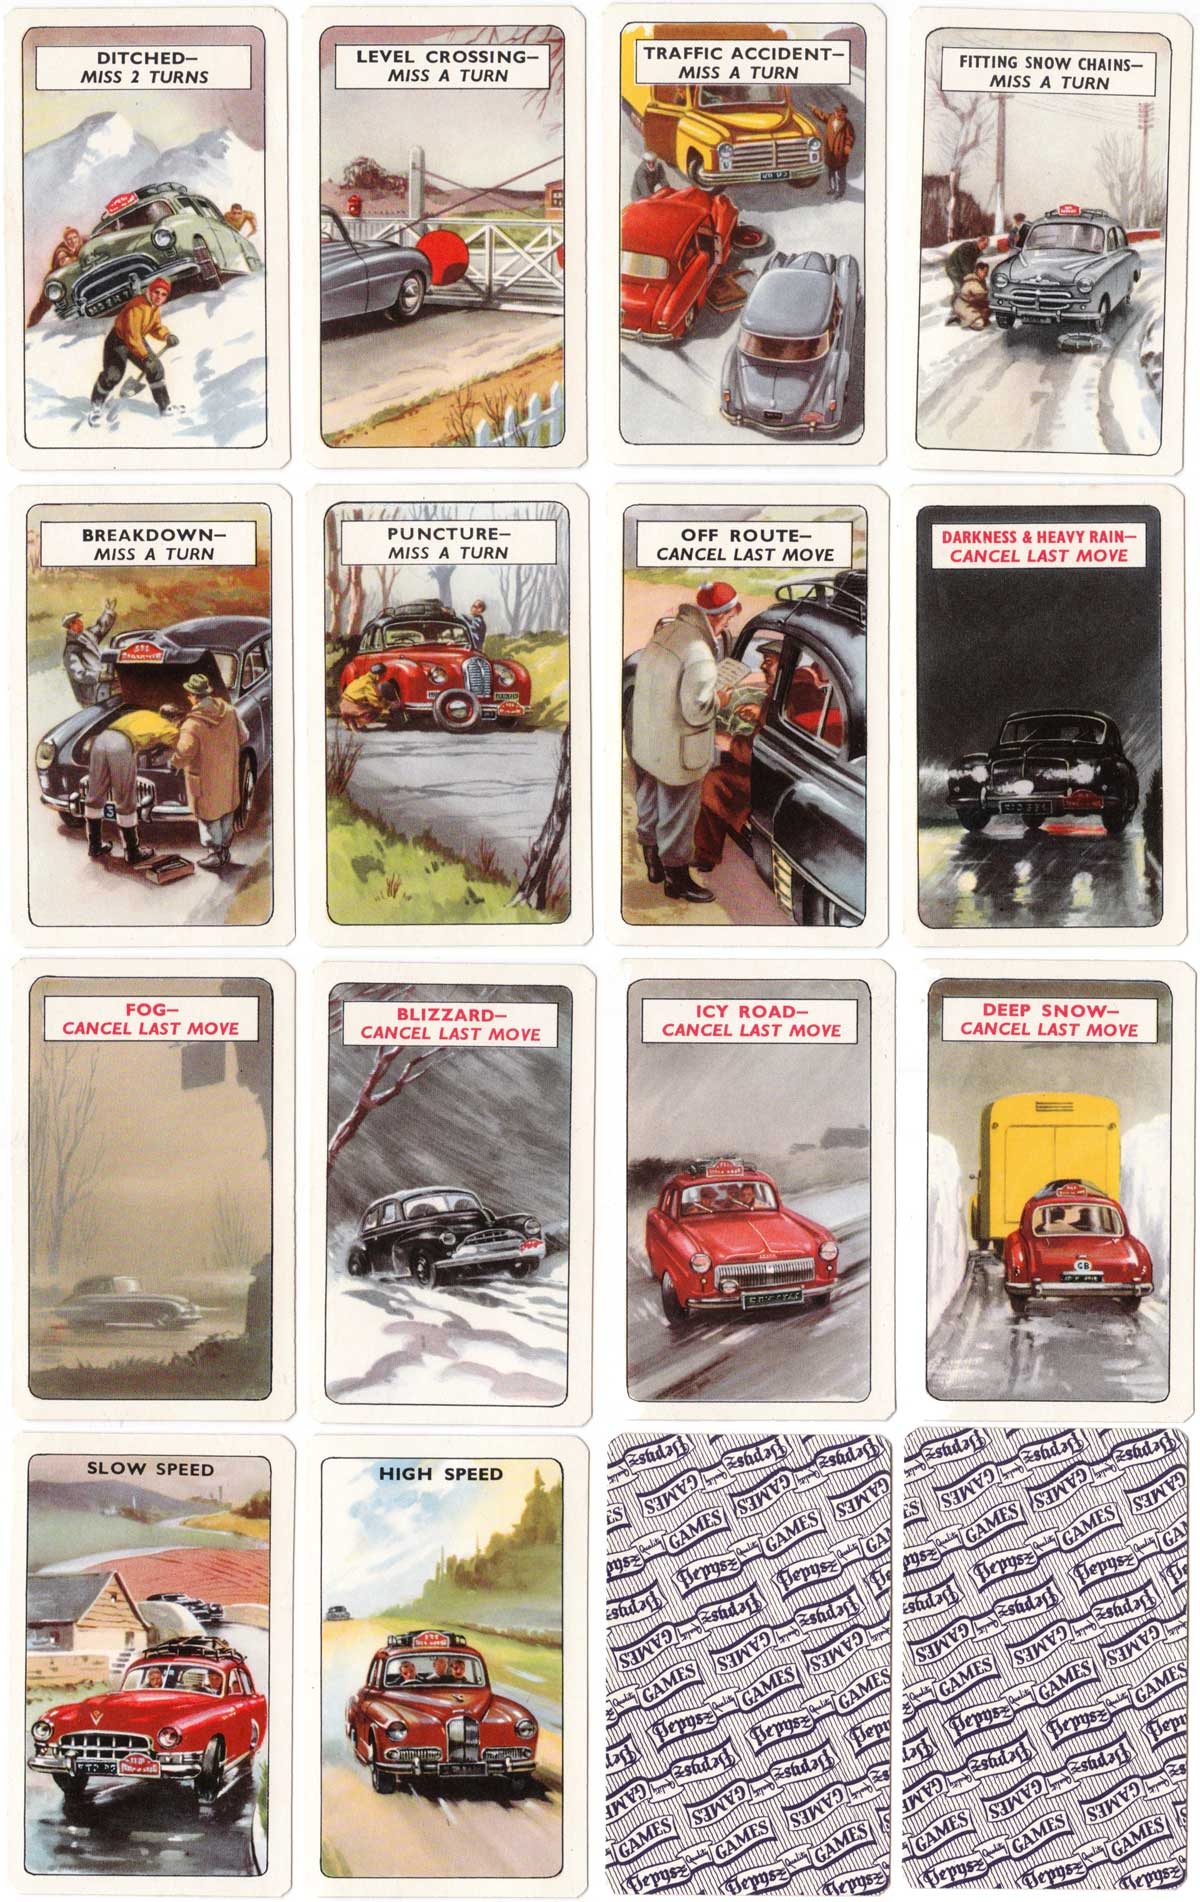 Rally card game by Pepys, 1955